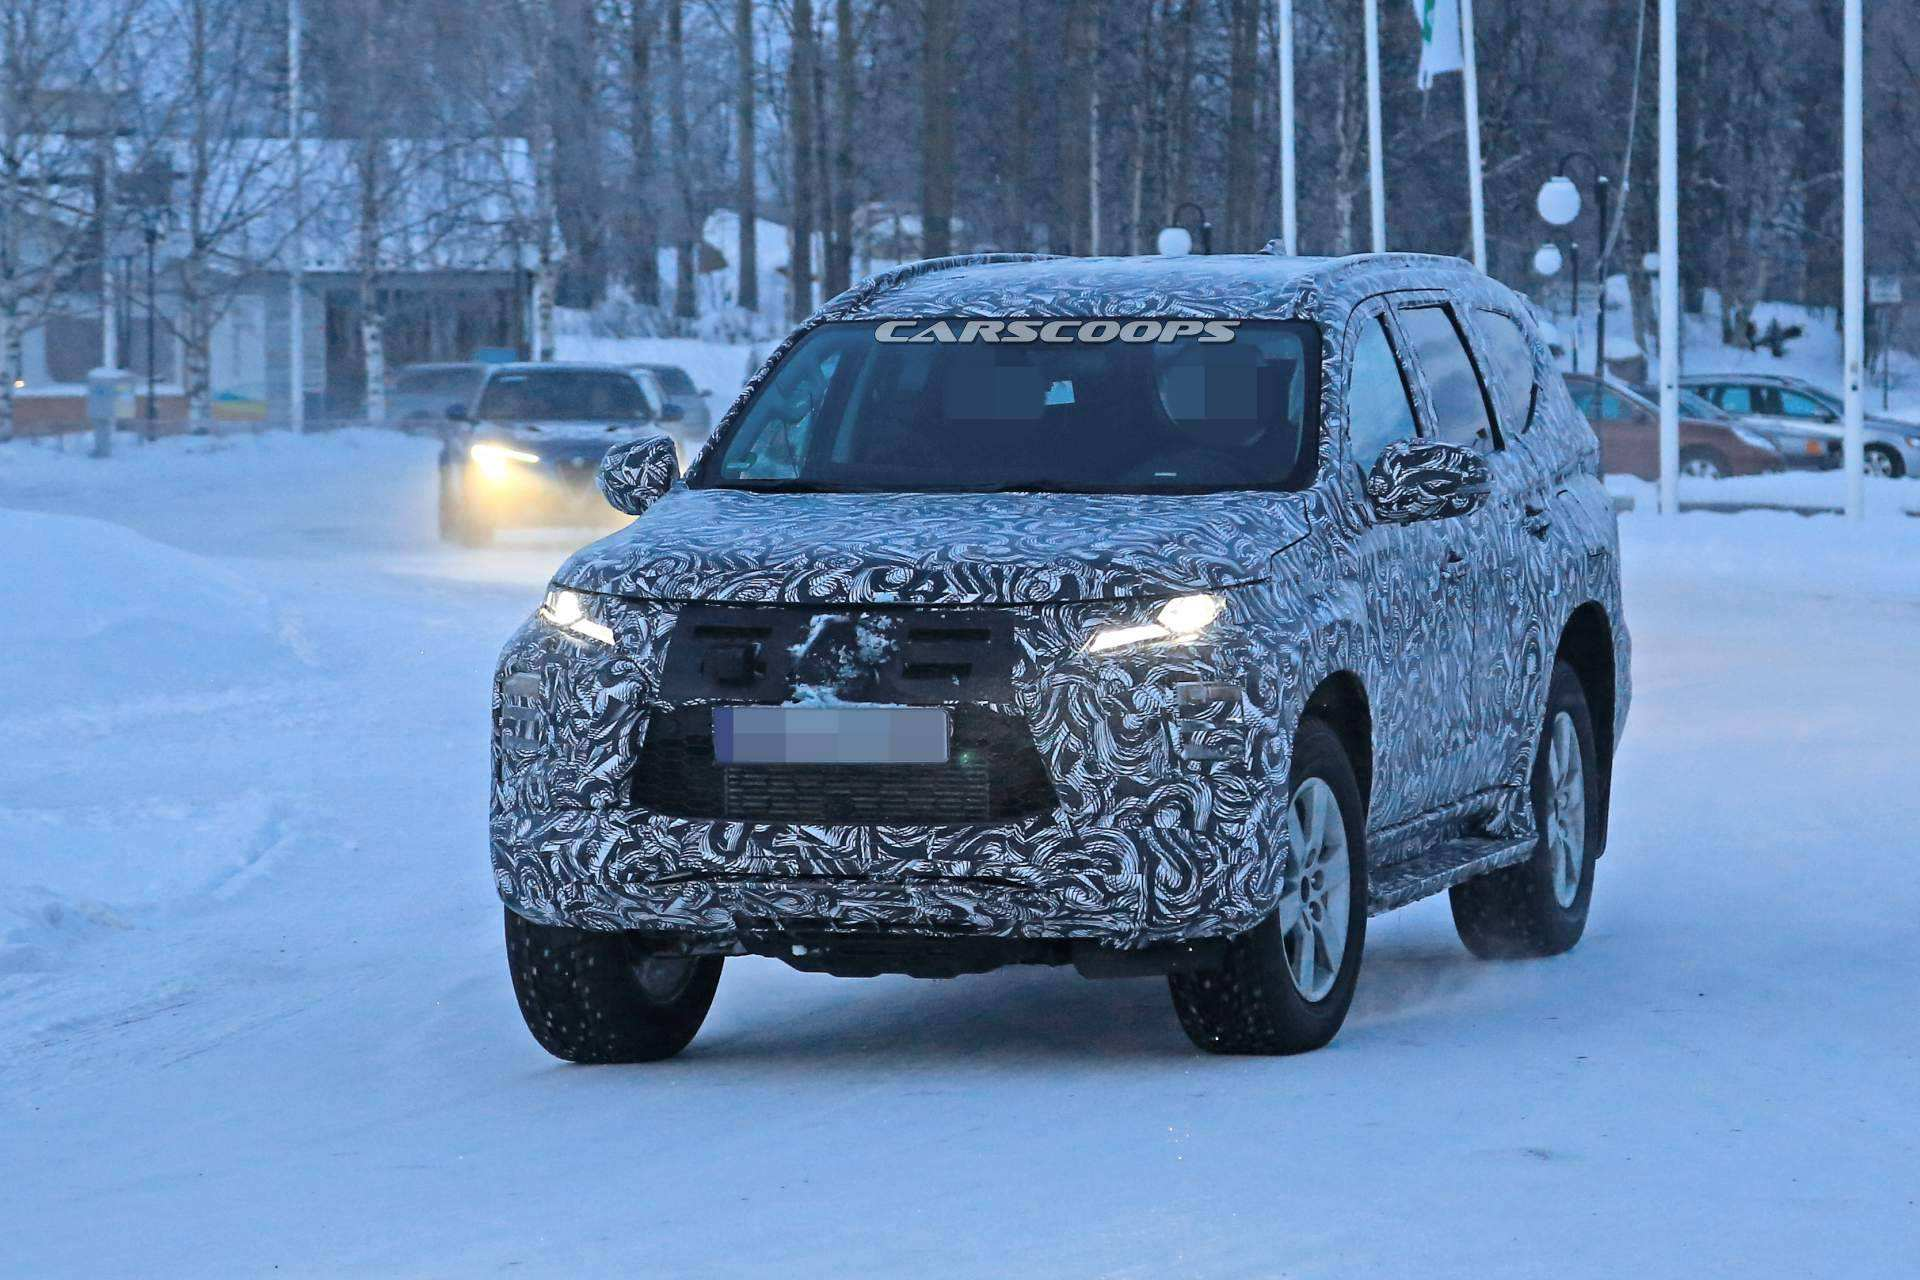 18 All New Mitsubishi Pajero Shogun 2020 Release Date and Concept